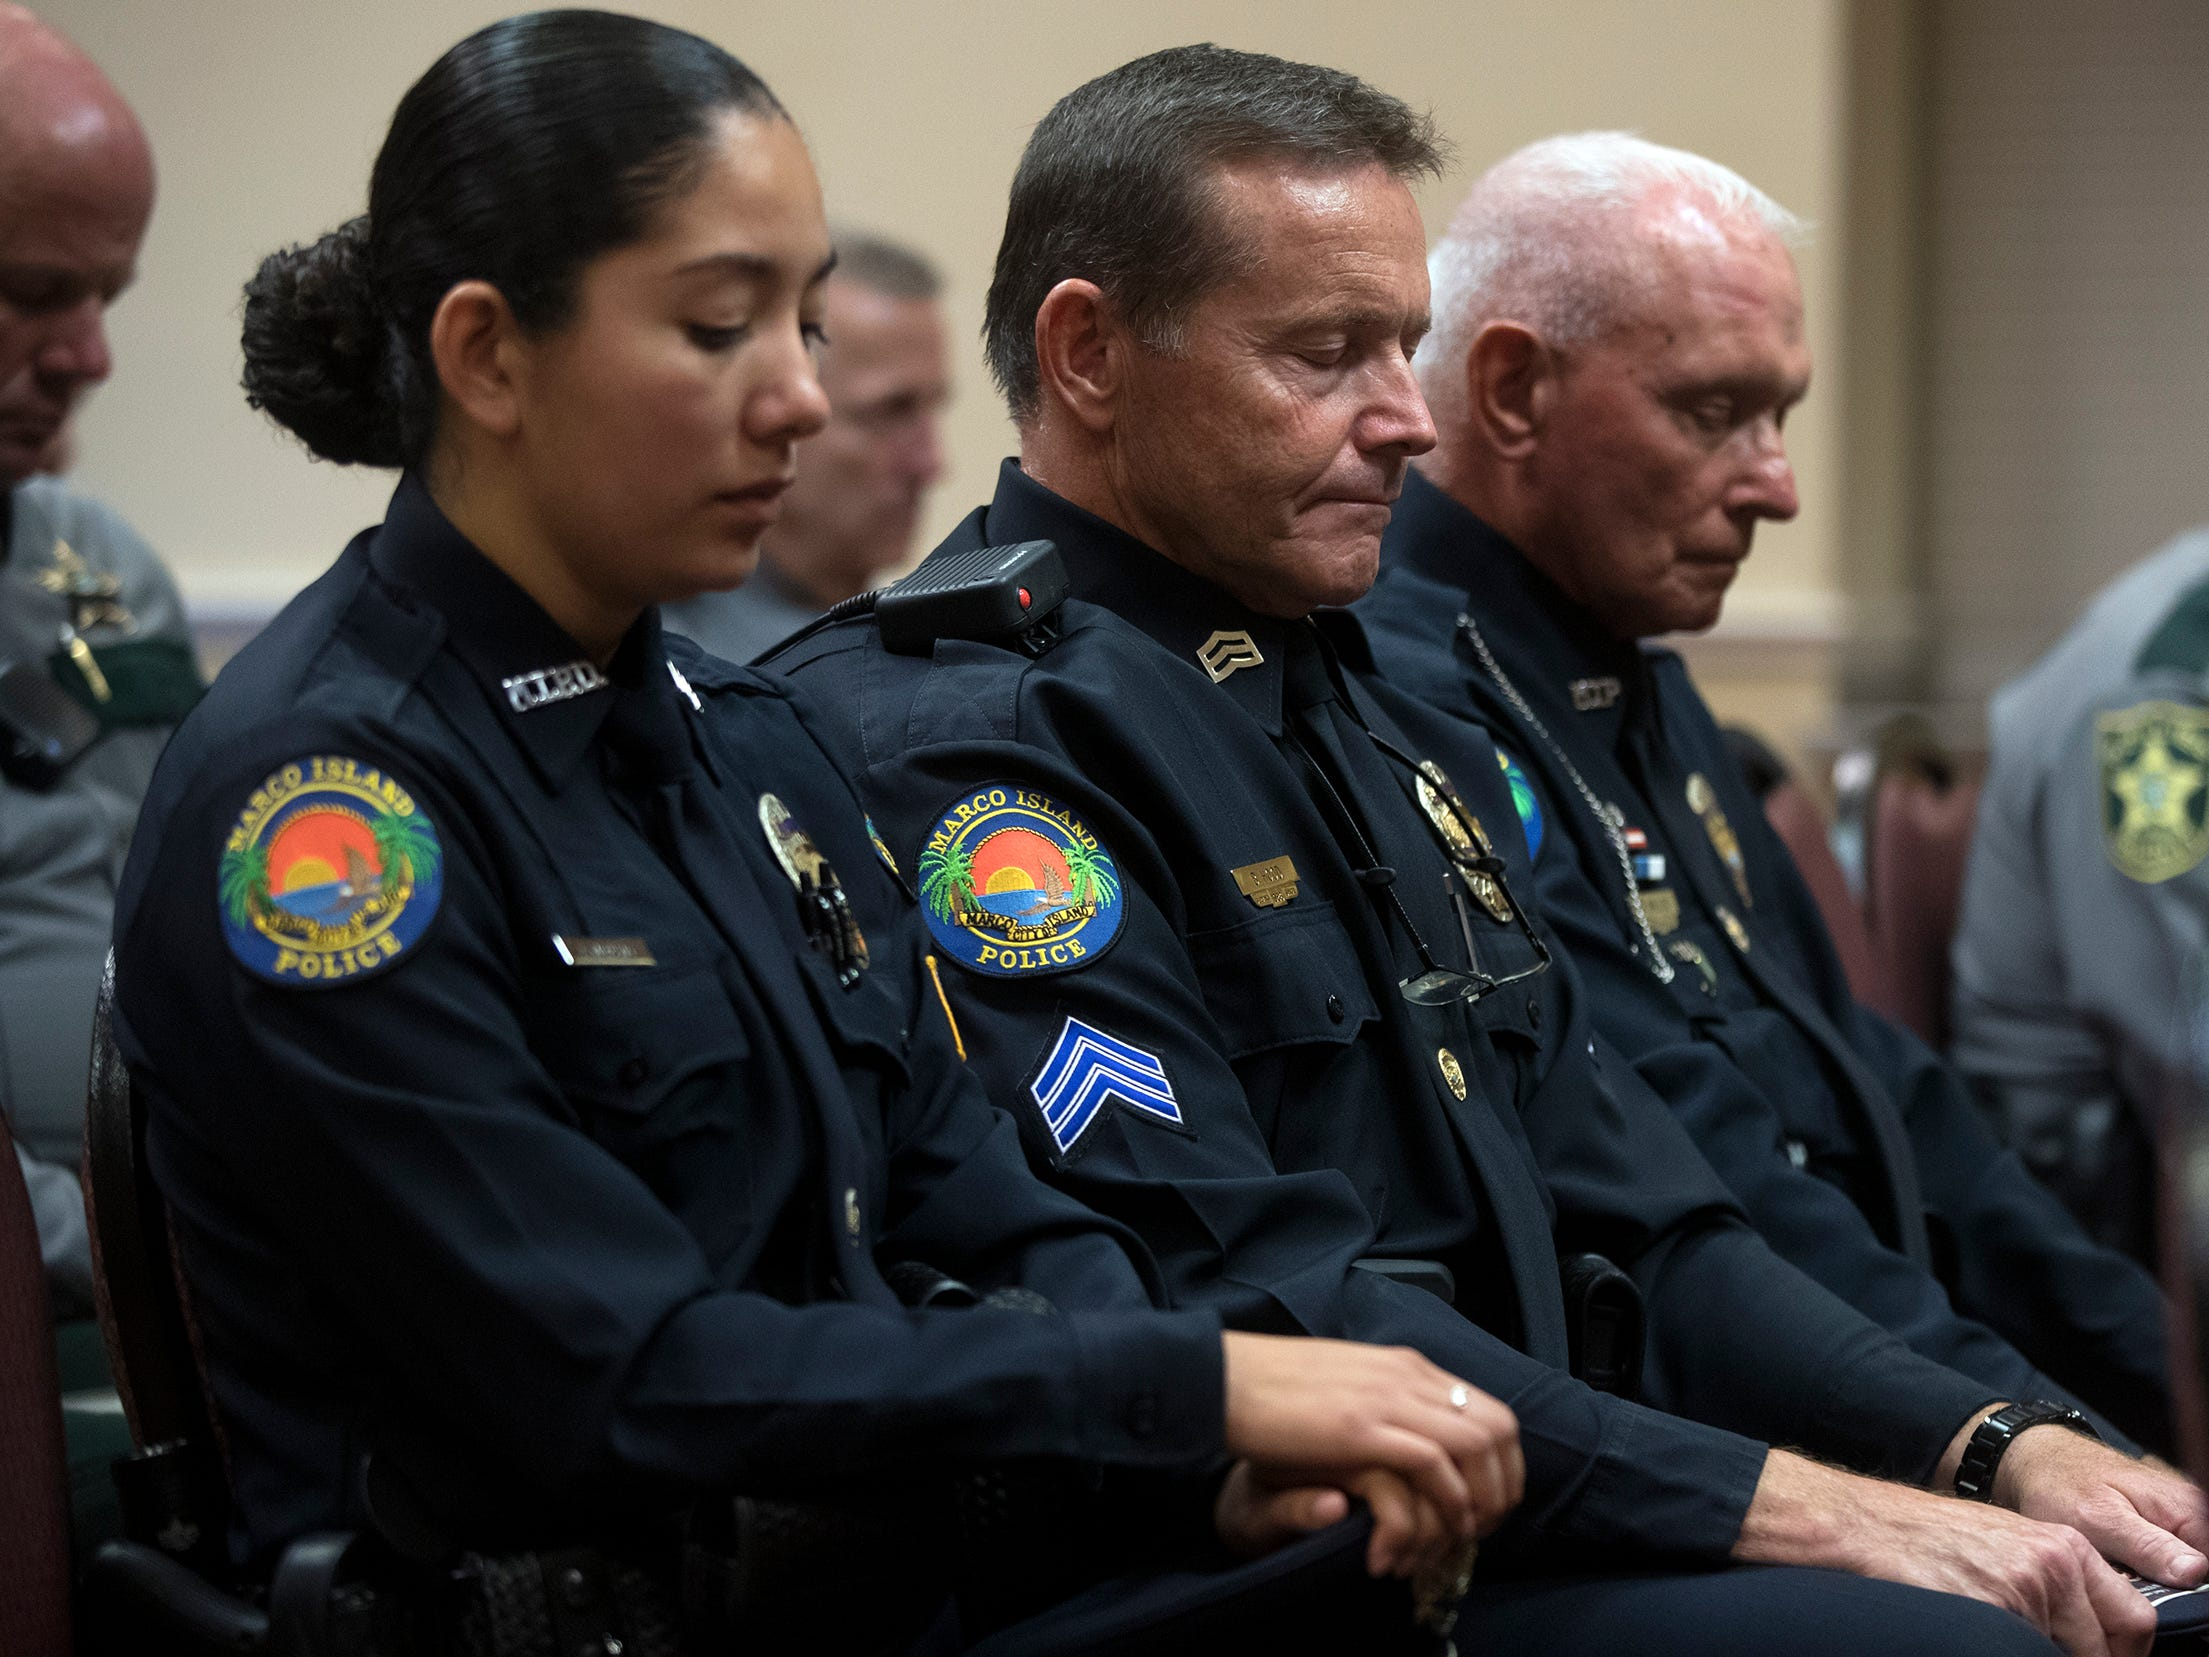 Officer Alejandra Moreno, left, and Sergeant Brian Hood, center, of the Marco Island Police Department, were among those honoring local law enforcement officers killed in the line of duty at a memorial on Wednesday at East Naples United Methodist Church. Thirteen officers have been killed in Collier County since 1928.